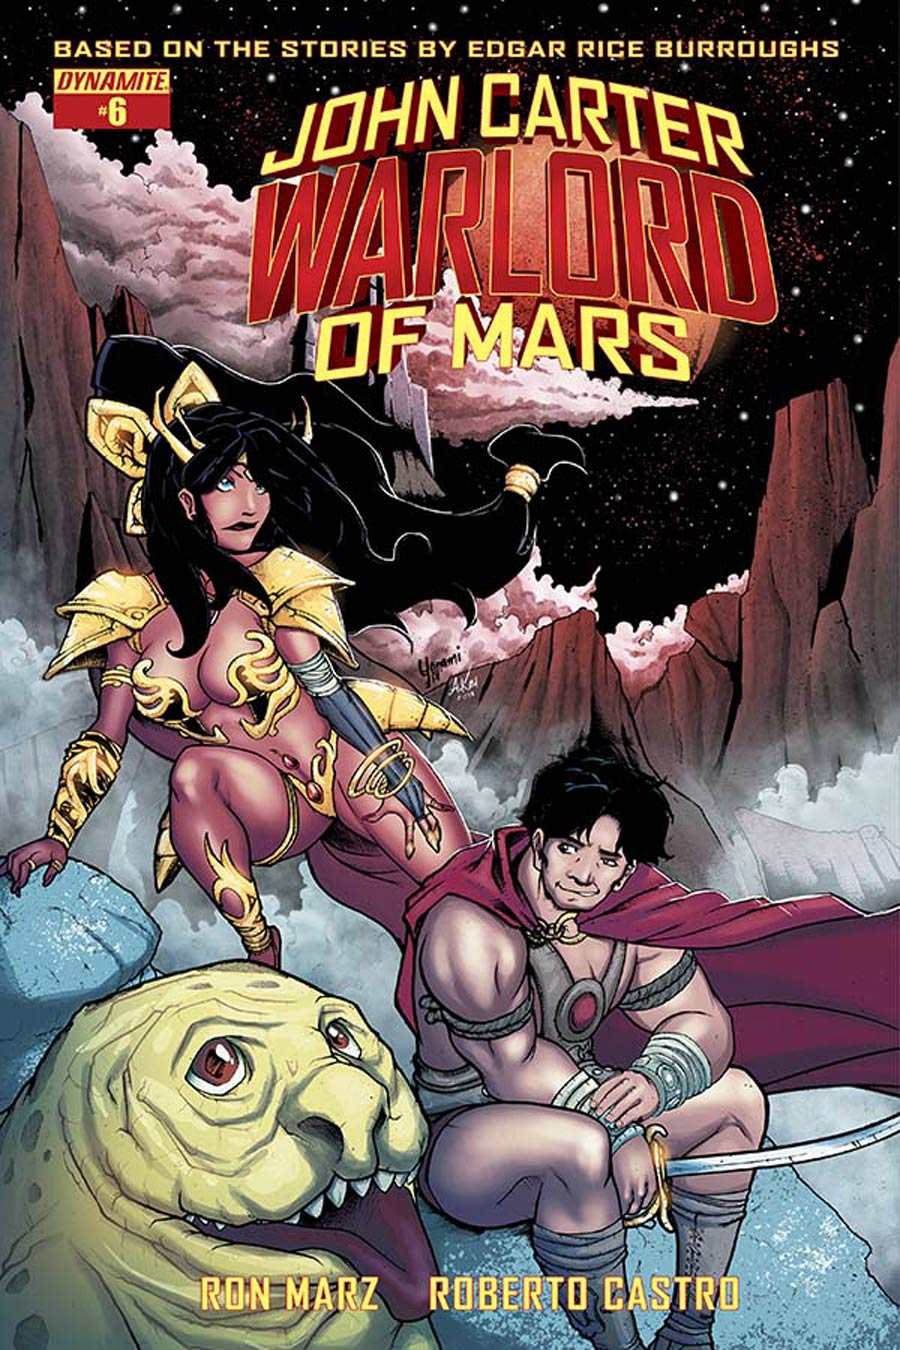 John Carter Warlord Of Mars Vol 2 #6 Cover D Variant Yonami Subscription Cover